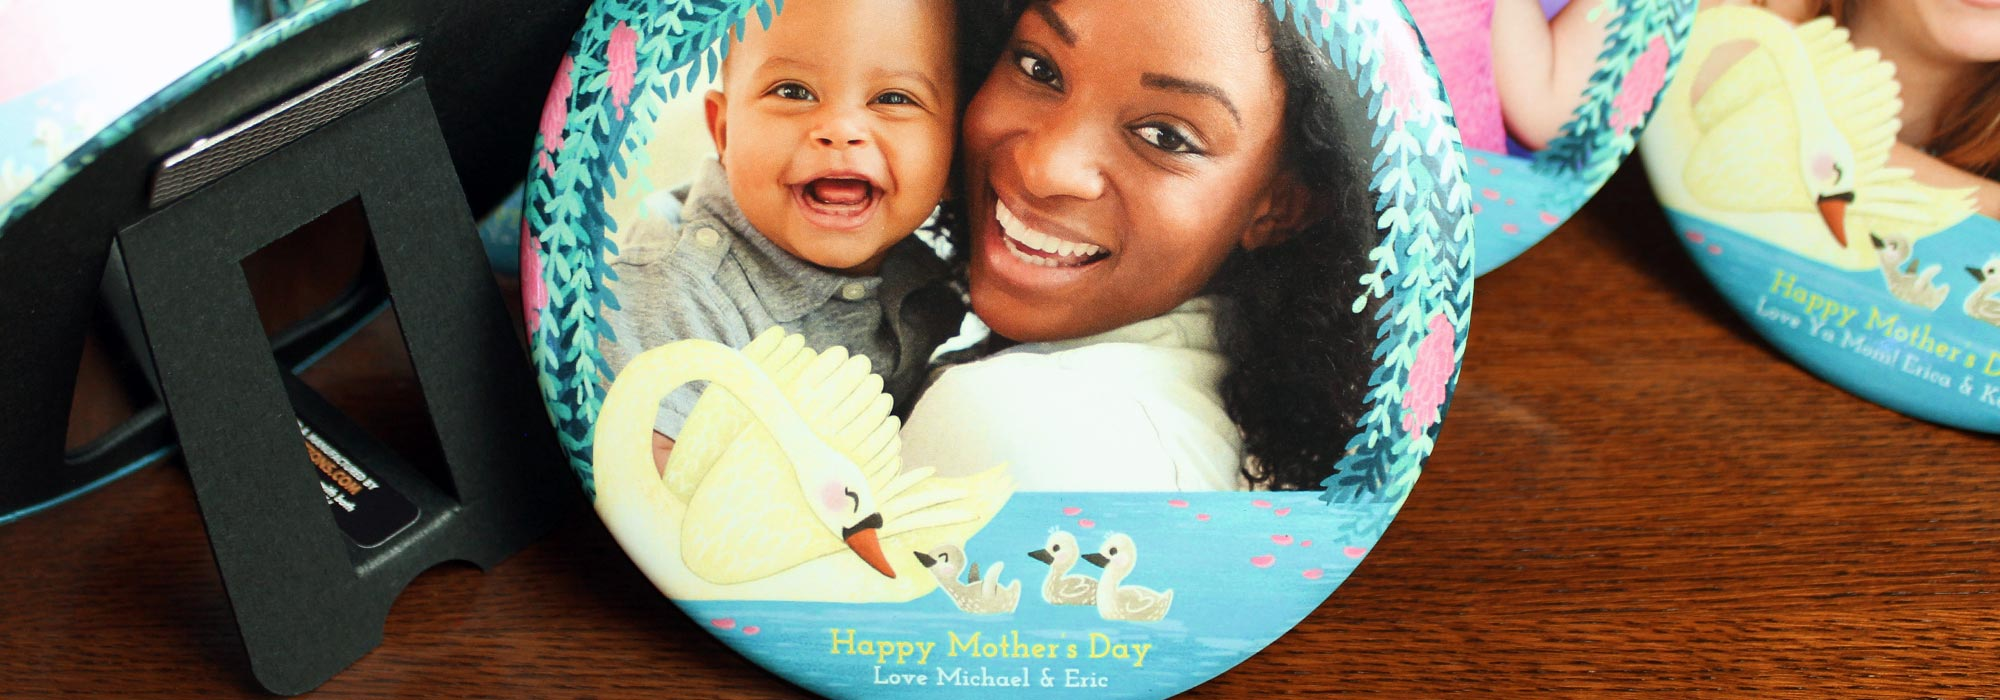 Mothers Day Photo Gifts